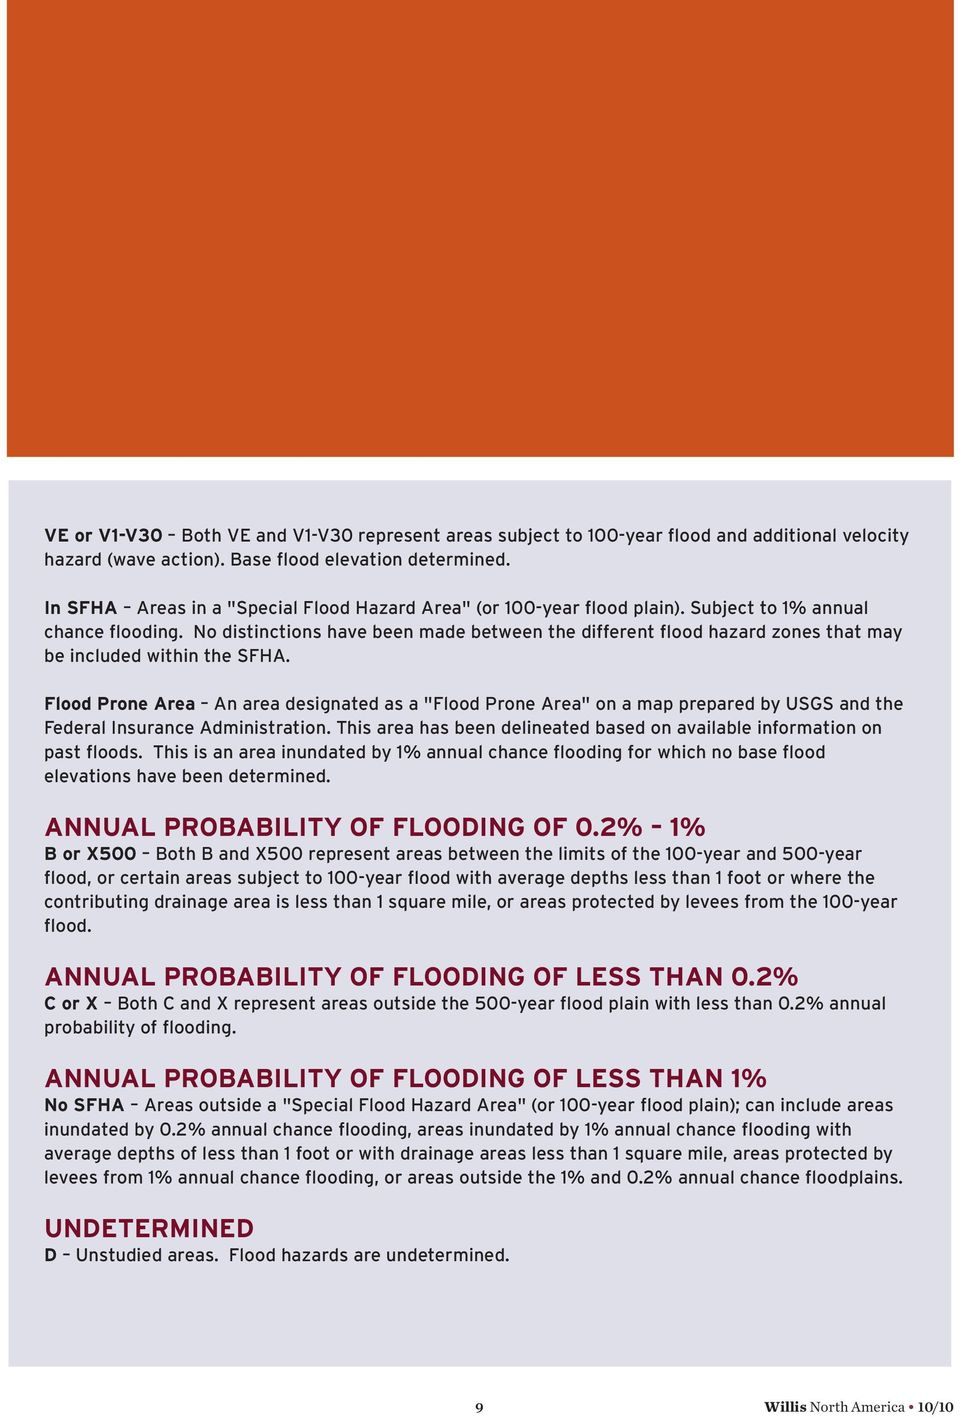 No distinctions have been made between the different flood hazard zones that may be included within the SFHA.